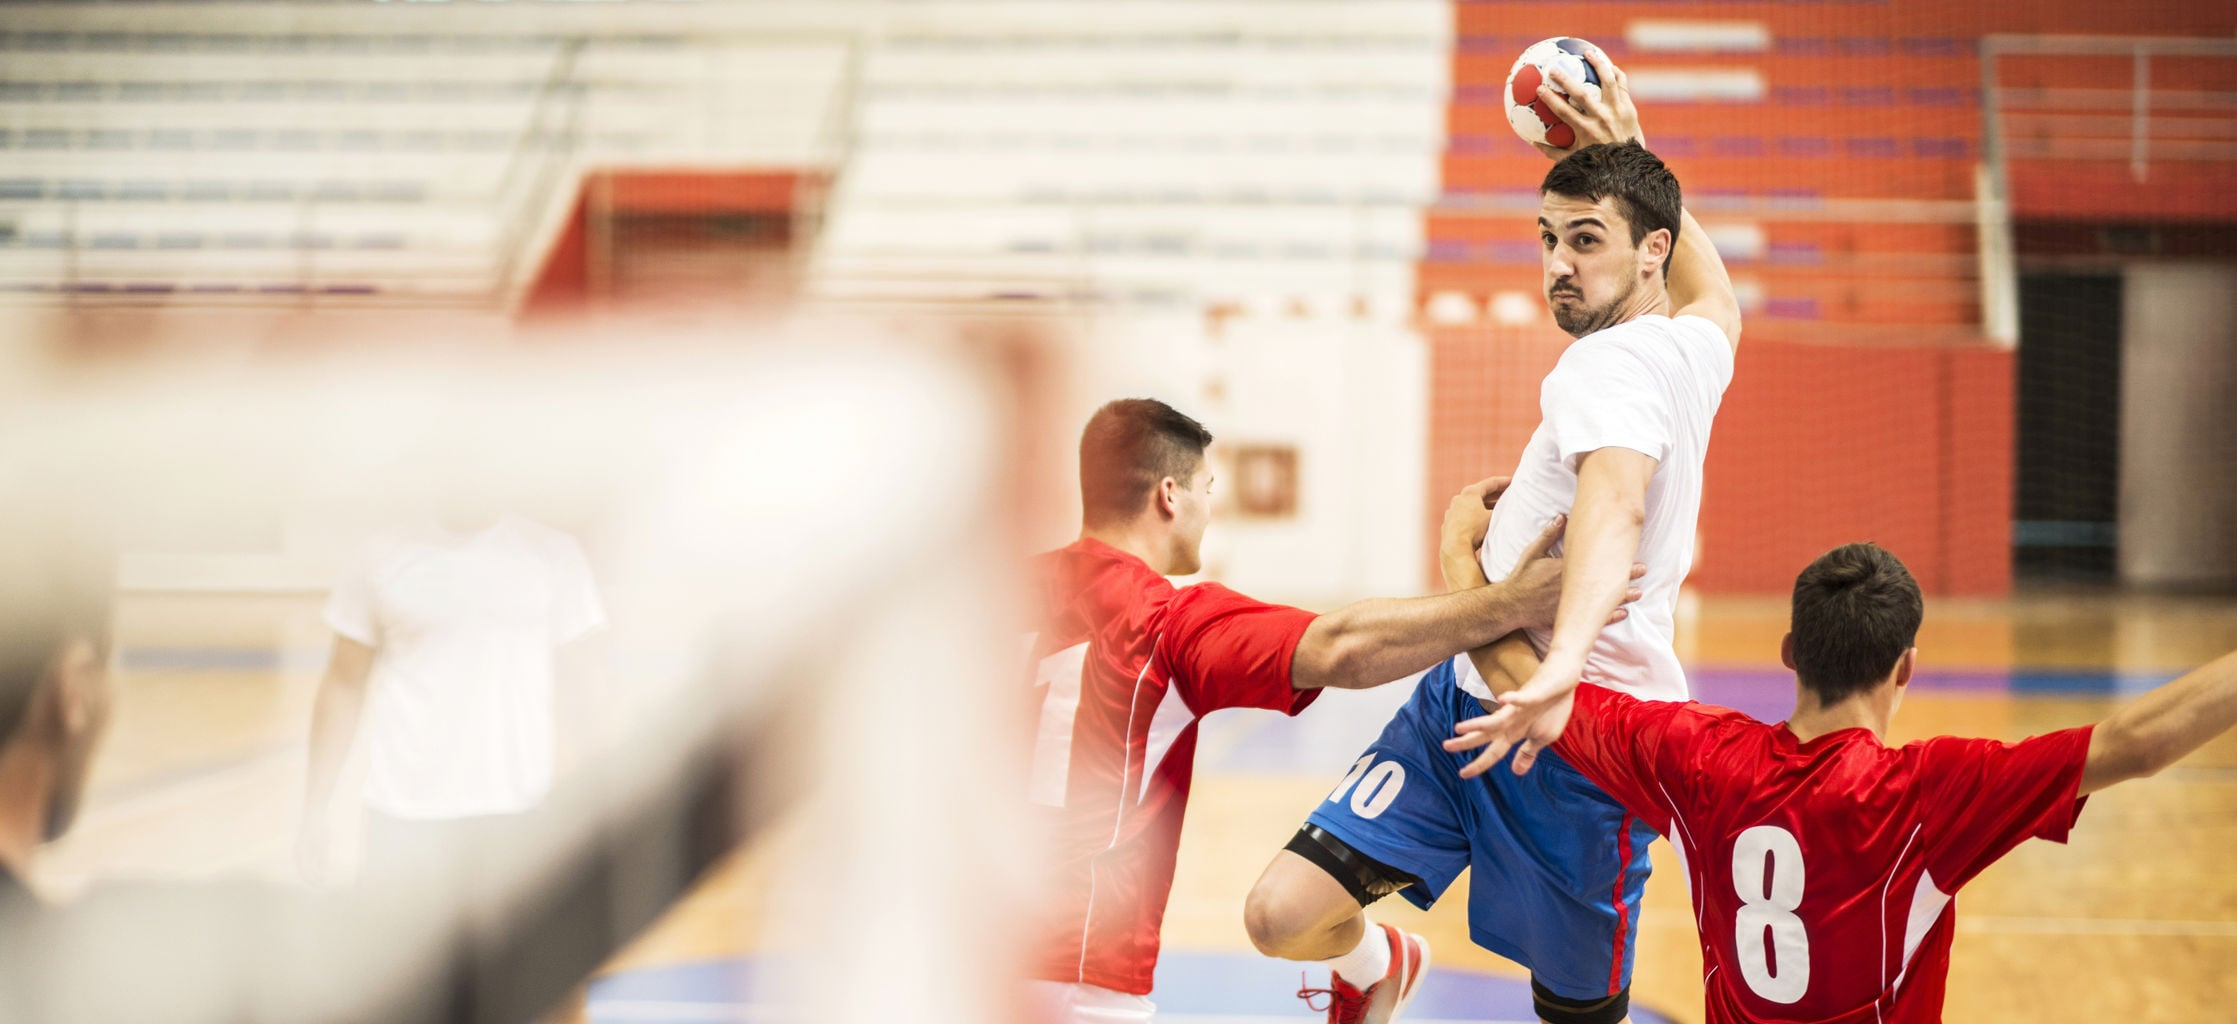 Montpellier Handball — Tremblay en France Handball